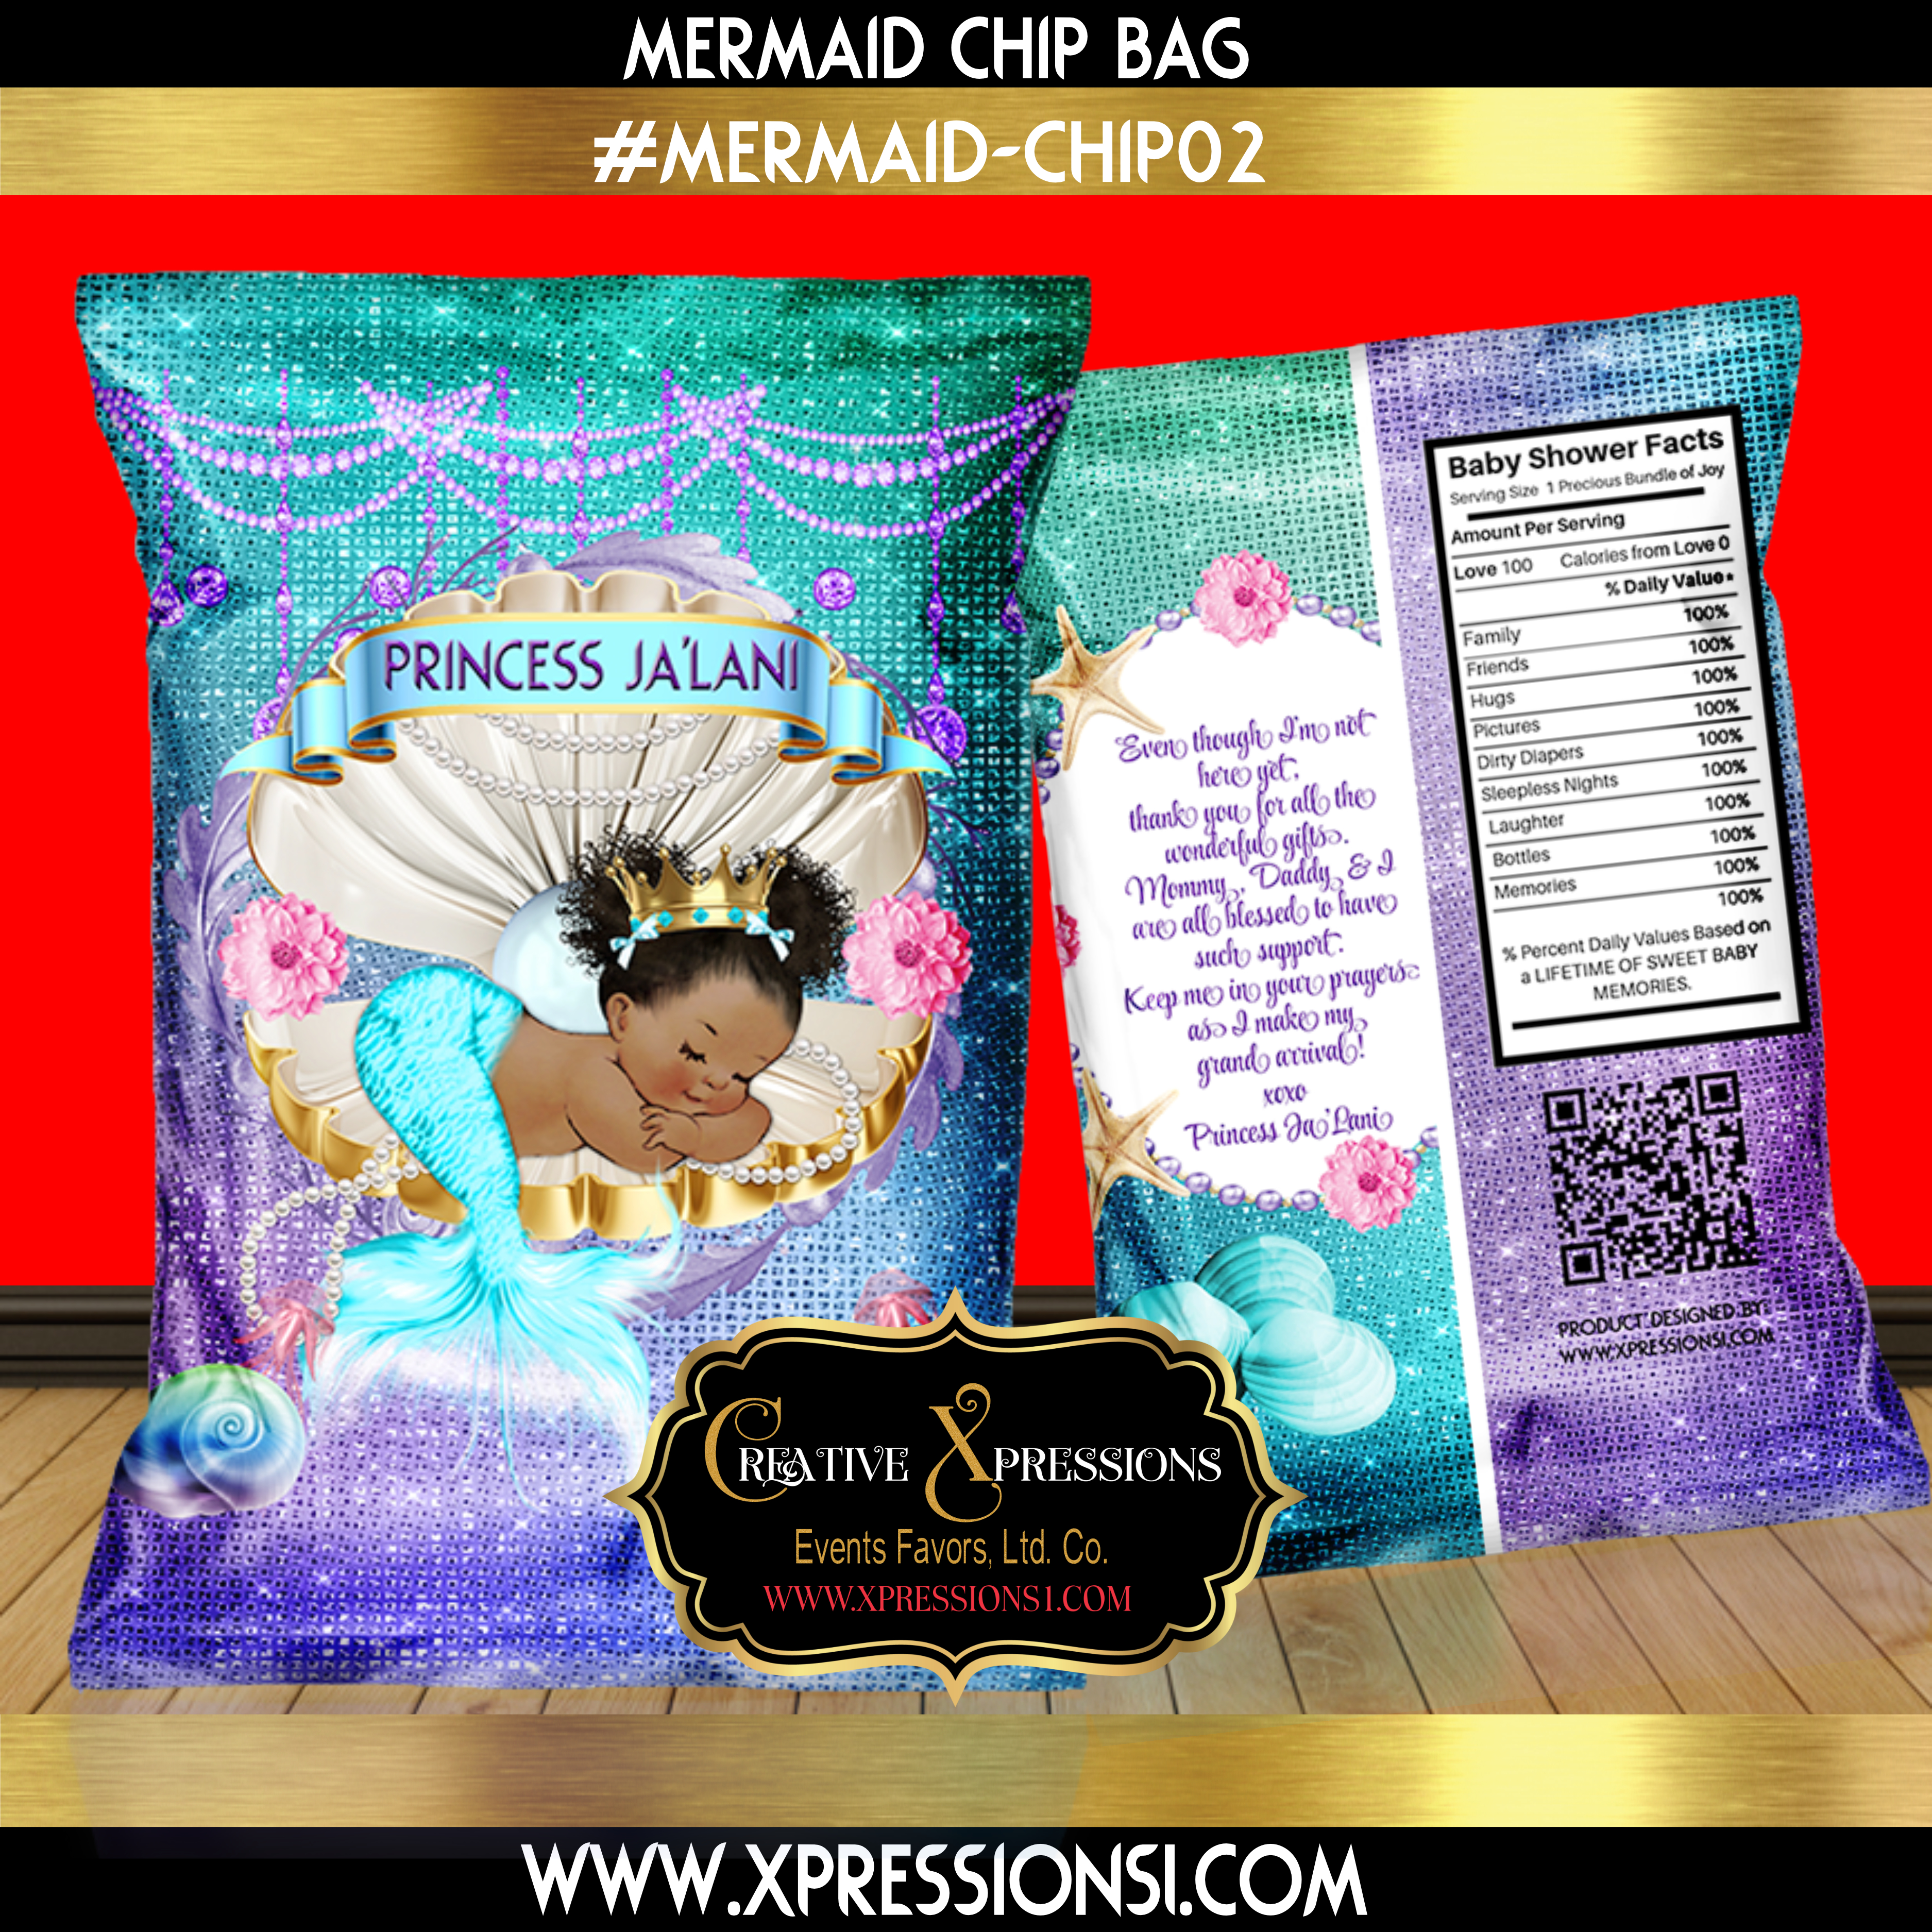 Turquoise and Purple Mermaid Chip Bag